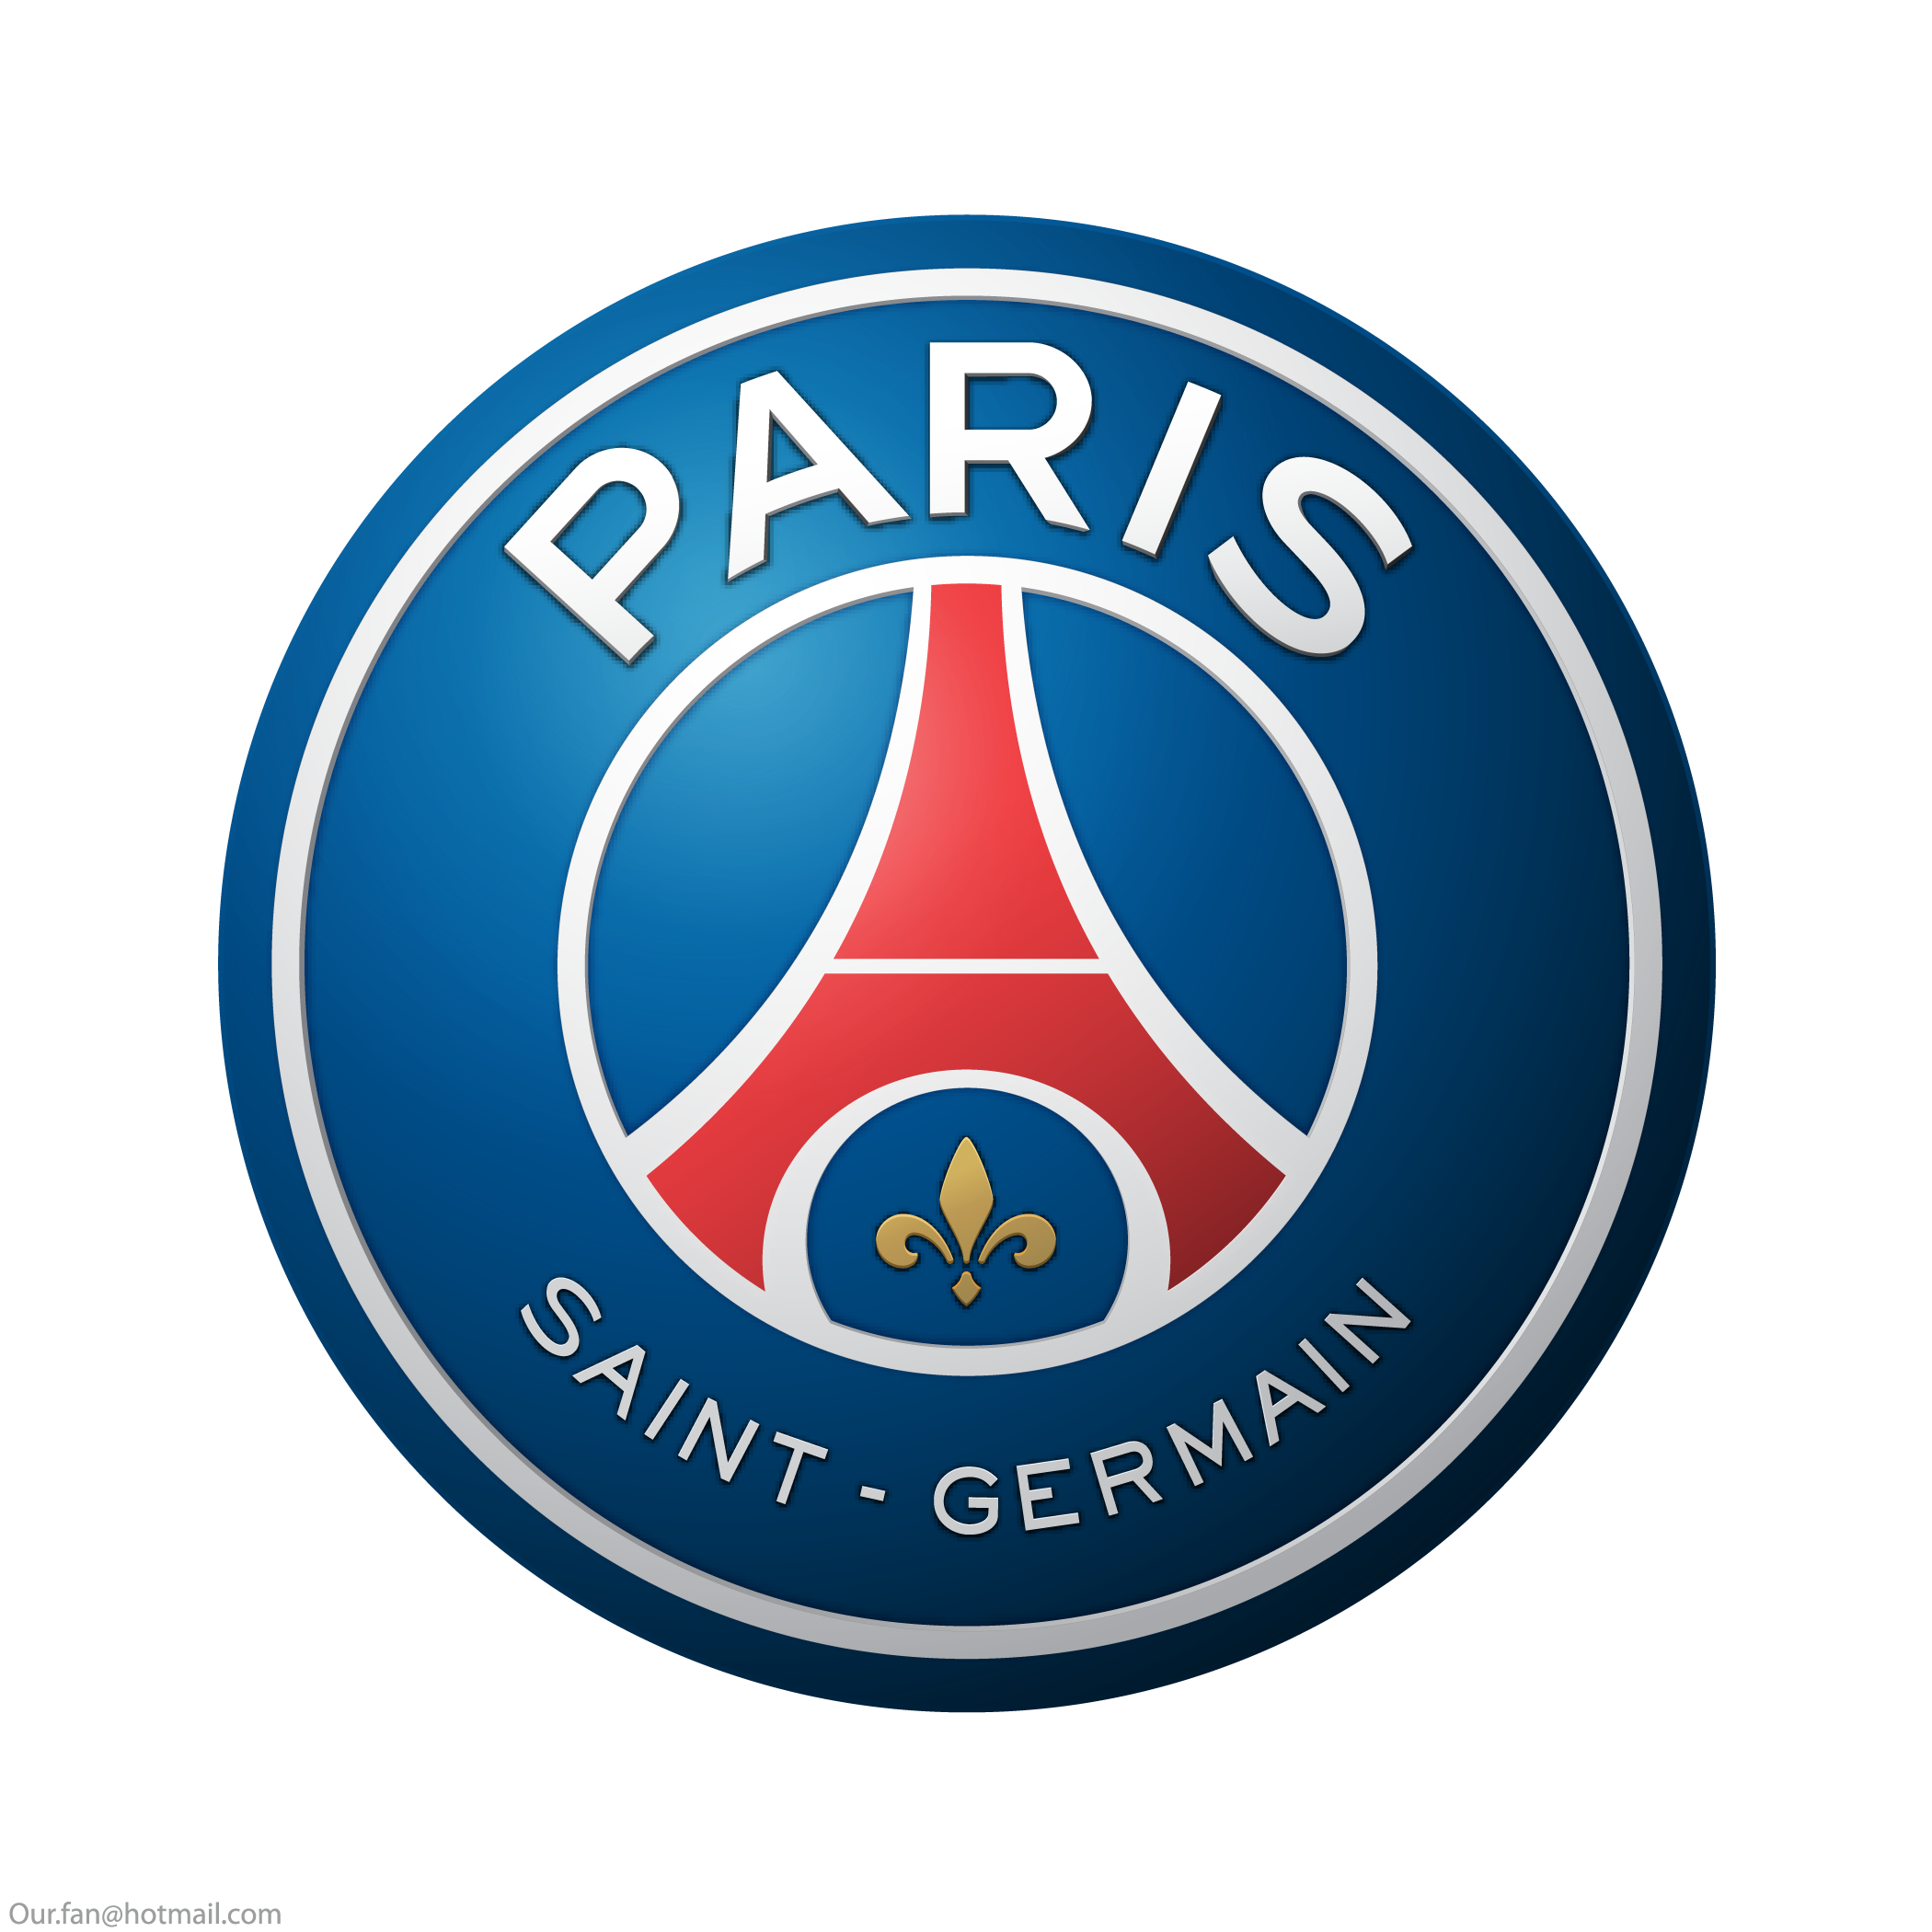 psg logo escudo paris saint germain 1 - PSG Logo - Paris Saint-Germain Logo